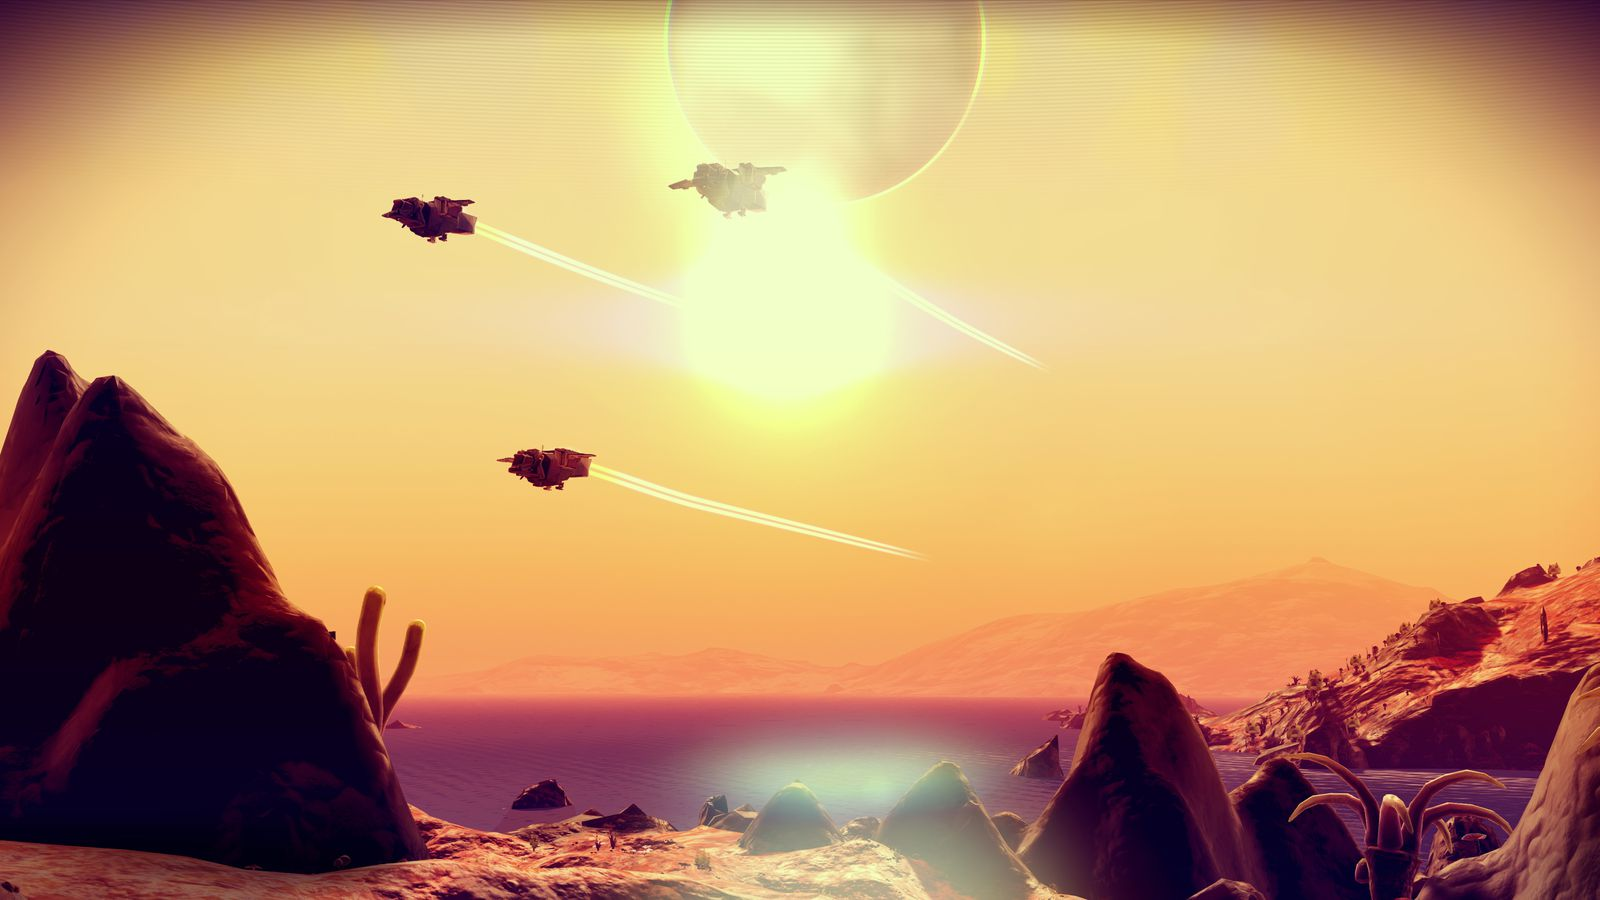 Don T Buy No Man S Sky On Pc Yet Update Some Fixes Inside Polygon